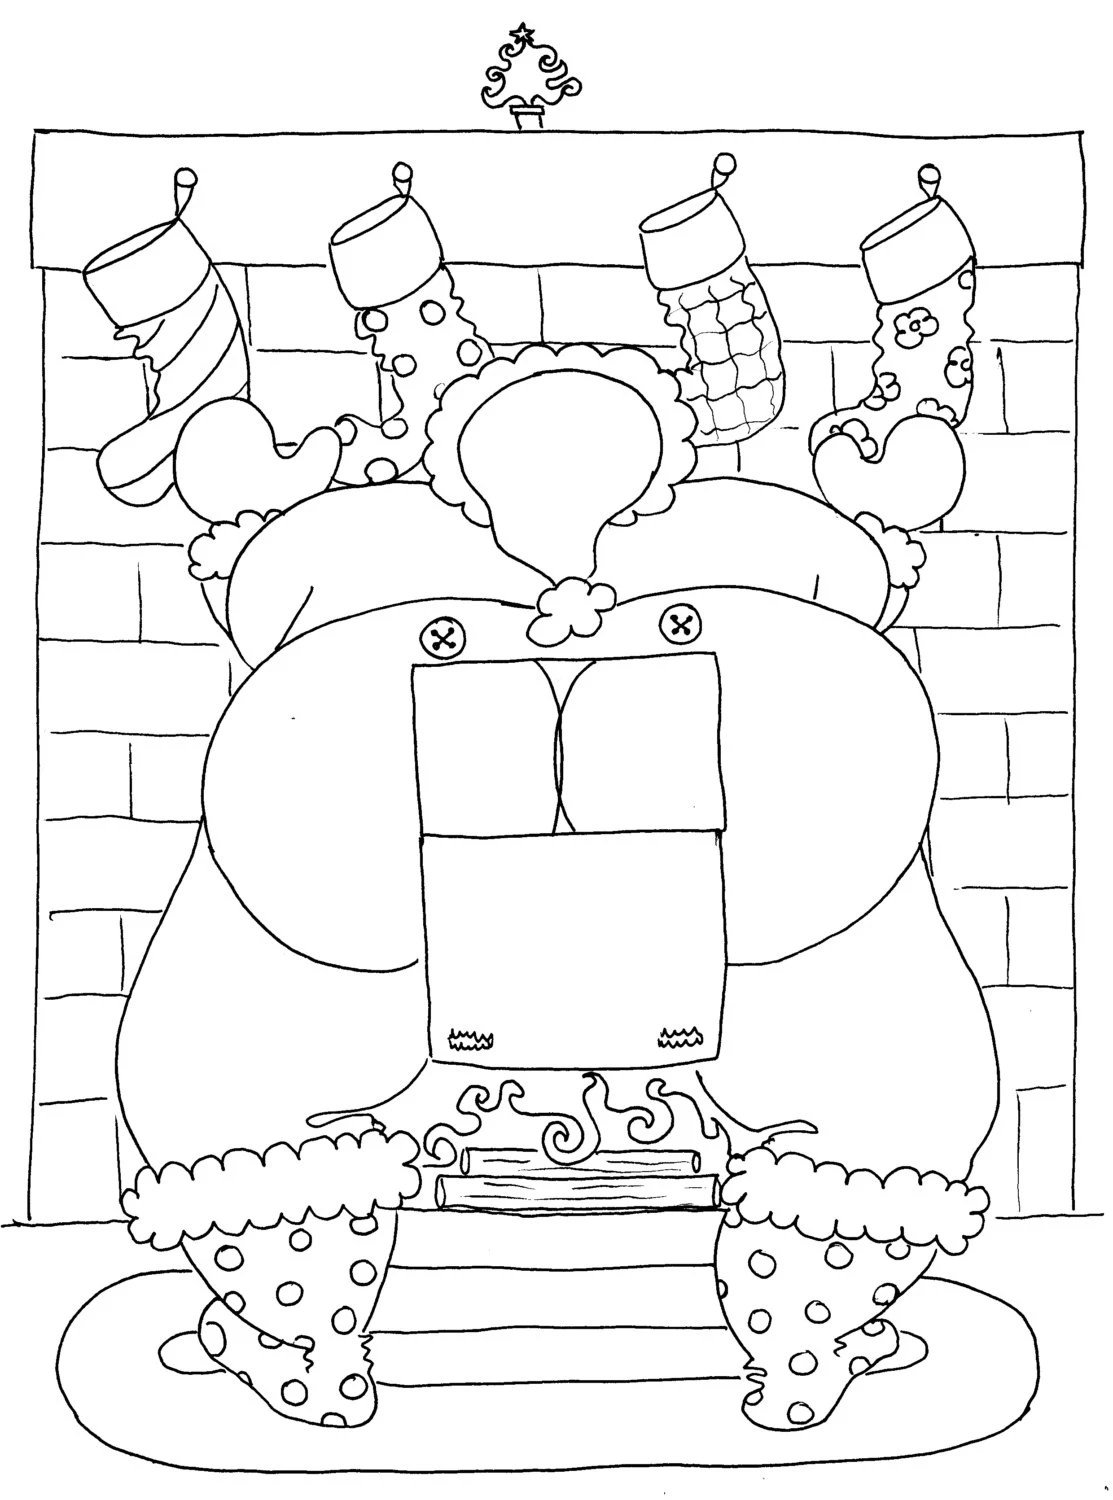 as drewer auto electrical wiring diagram GE Thermostat Wiring Diagram droopy drawers christmas coloring pages for adults from the